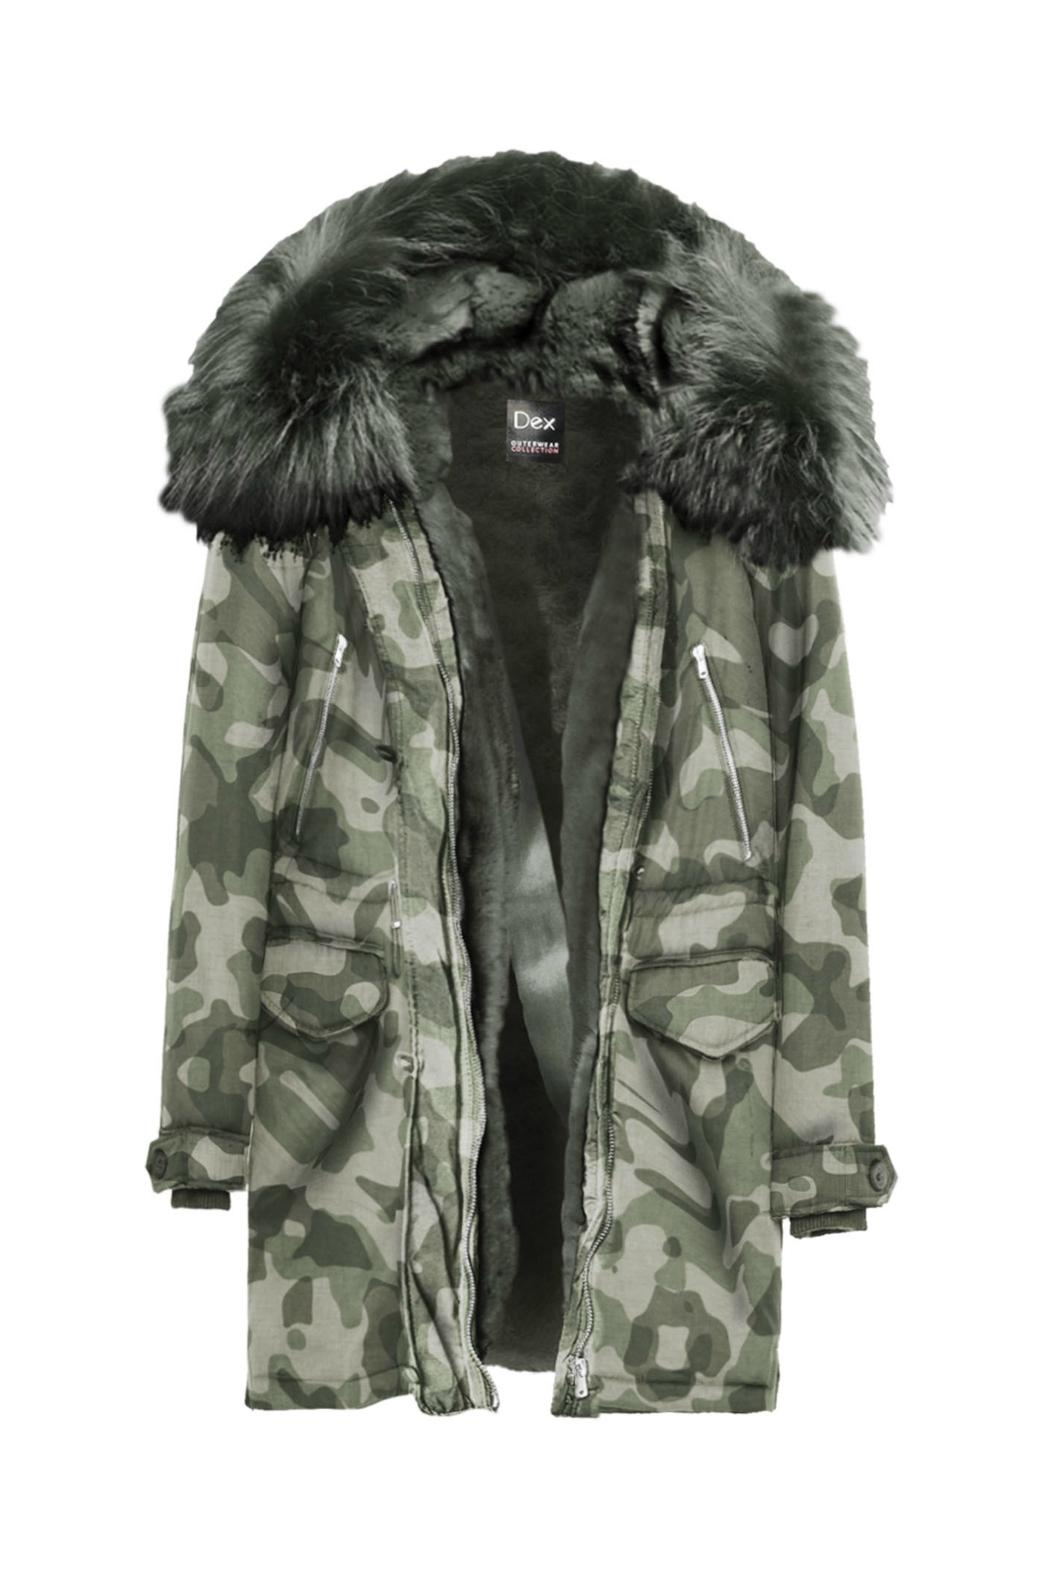 Dex Faux Fur Parka From New Jersey By Charlotte S Web